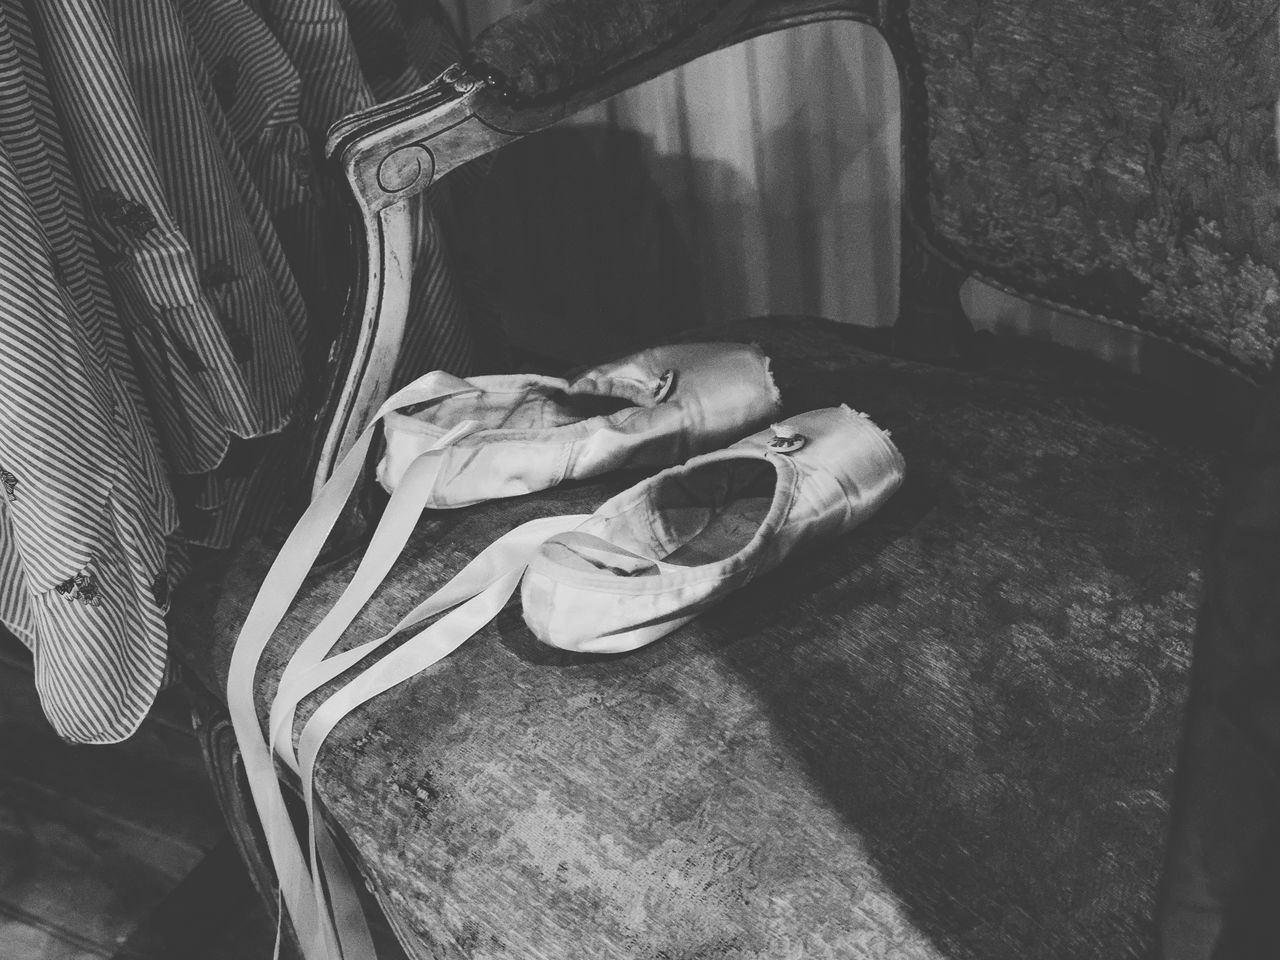 Ballet Shoes Balletshoes Blackandwhite Blackandwhitephotography Black And White Photography Blackandwhite Photography EyeEm Gallery EyeEm Week On Eyeem Week Of Eyeem Mypointofview EyeEm Best Shots The Week Of Eyeem My Point Of View Live For The Story BYOPaper! EyeEmNewHere